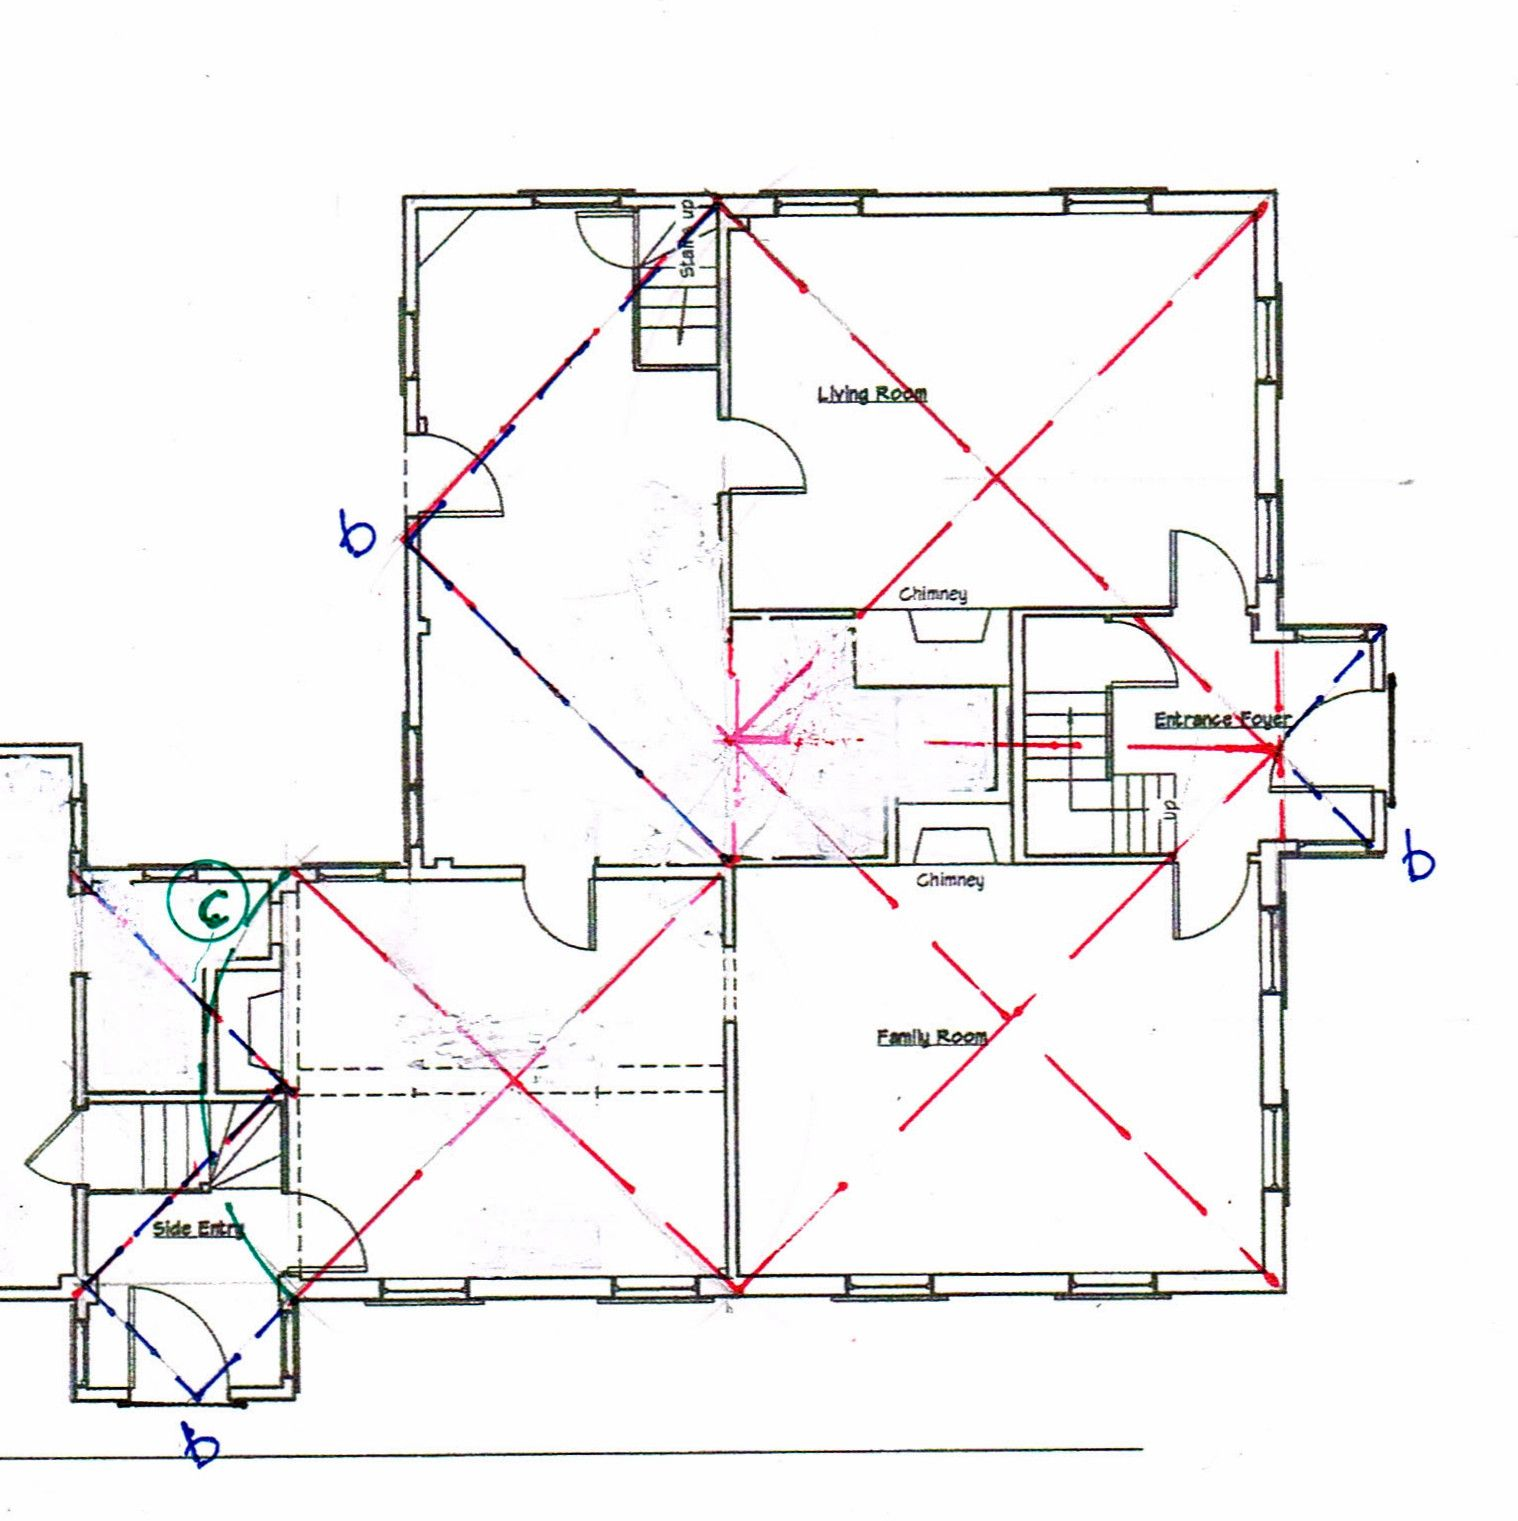 Create Floor Plans Online For Free   restaurant floor plan    Create Floor Plans Online For Free   restaurant floor plan online     D AND D FLOOR PLAN DESIGN   Pinterest   Create Floor Plan  Floor Plans Online